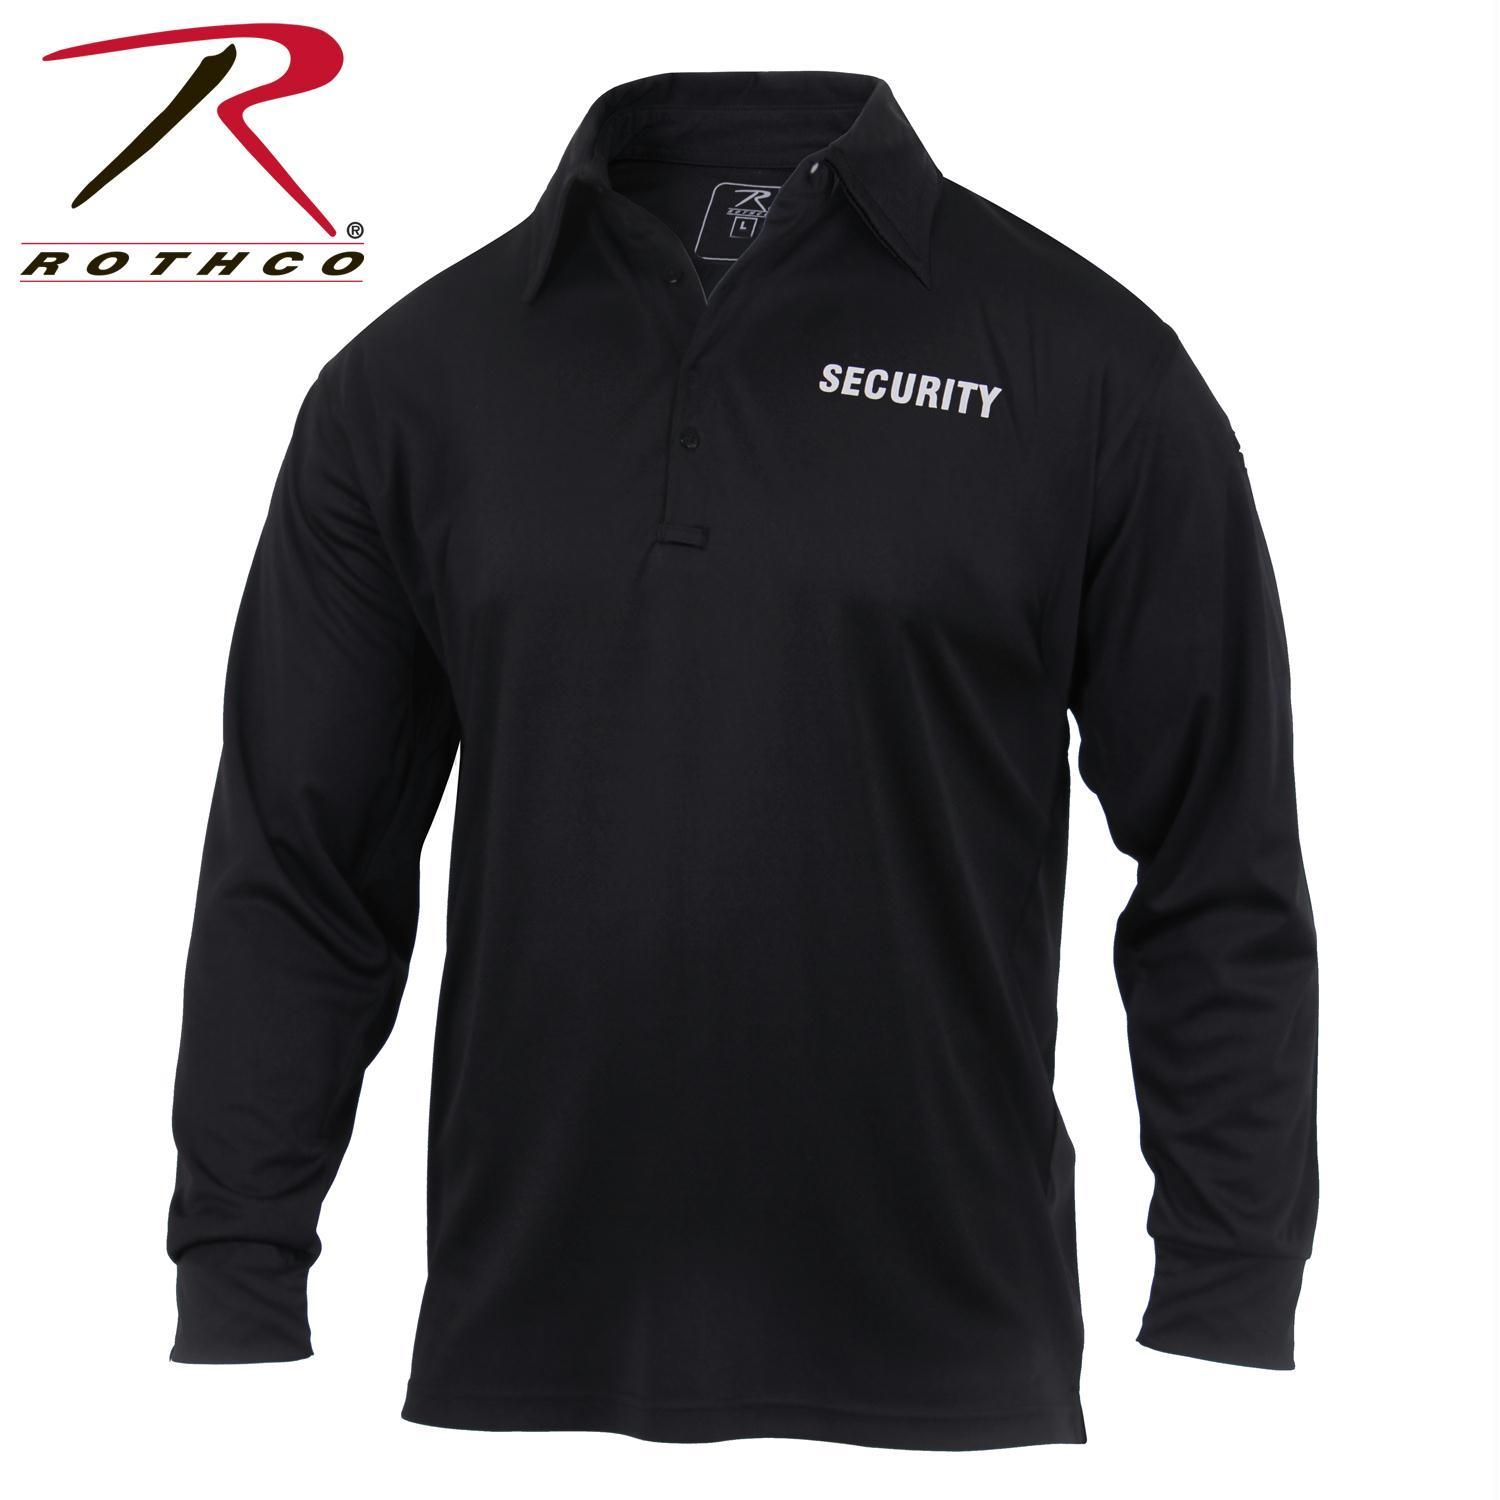 Rothco Moisture Wicking Long Sleeve Security Polo  b62bc8c3b76